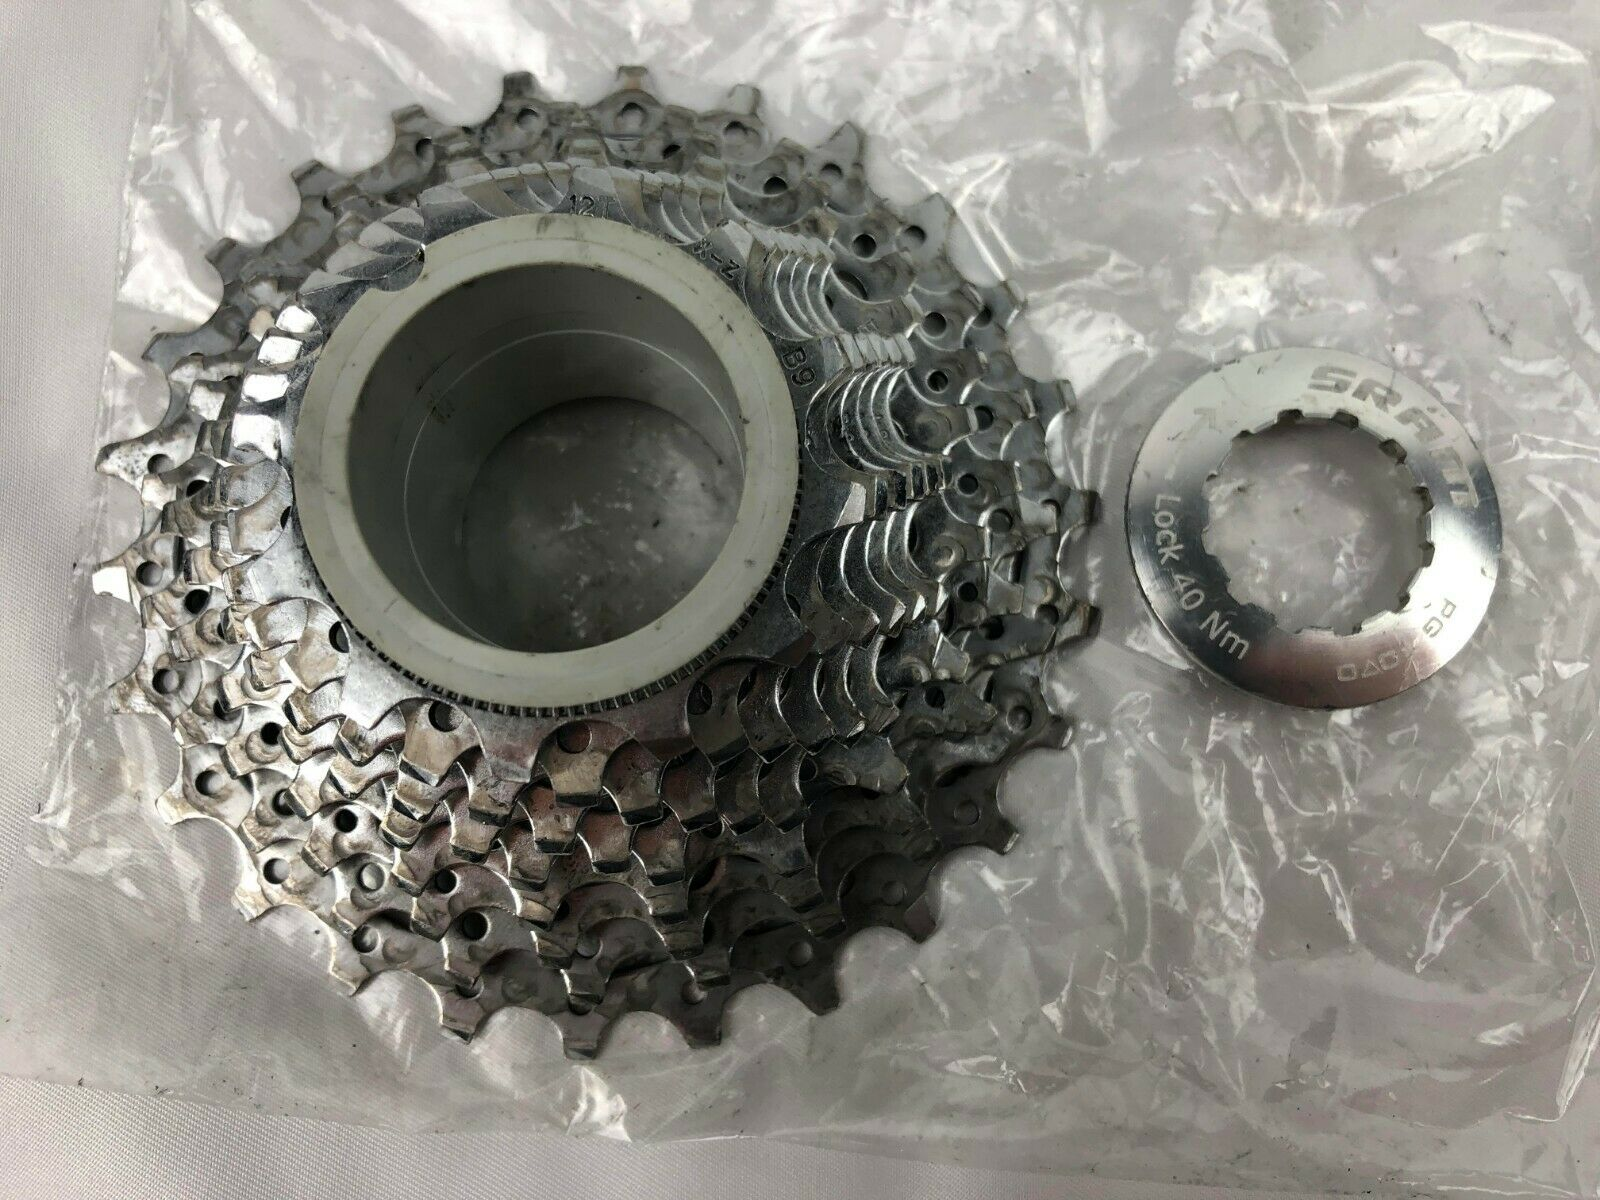 Sram PG-1070 Road Bicycle Cassette 12-26t (3p)